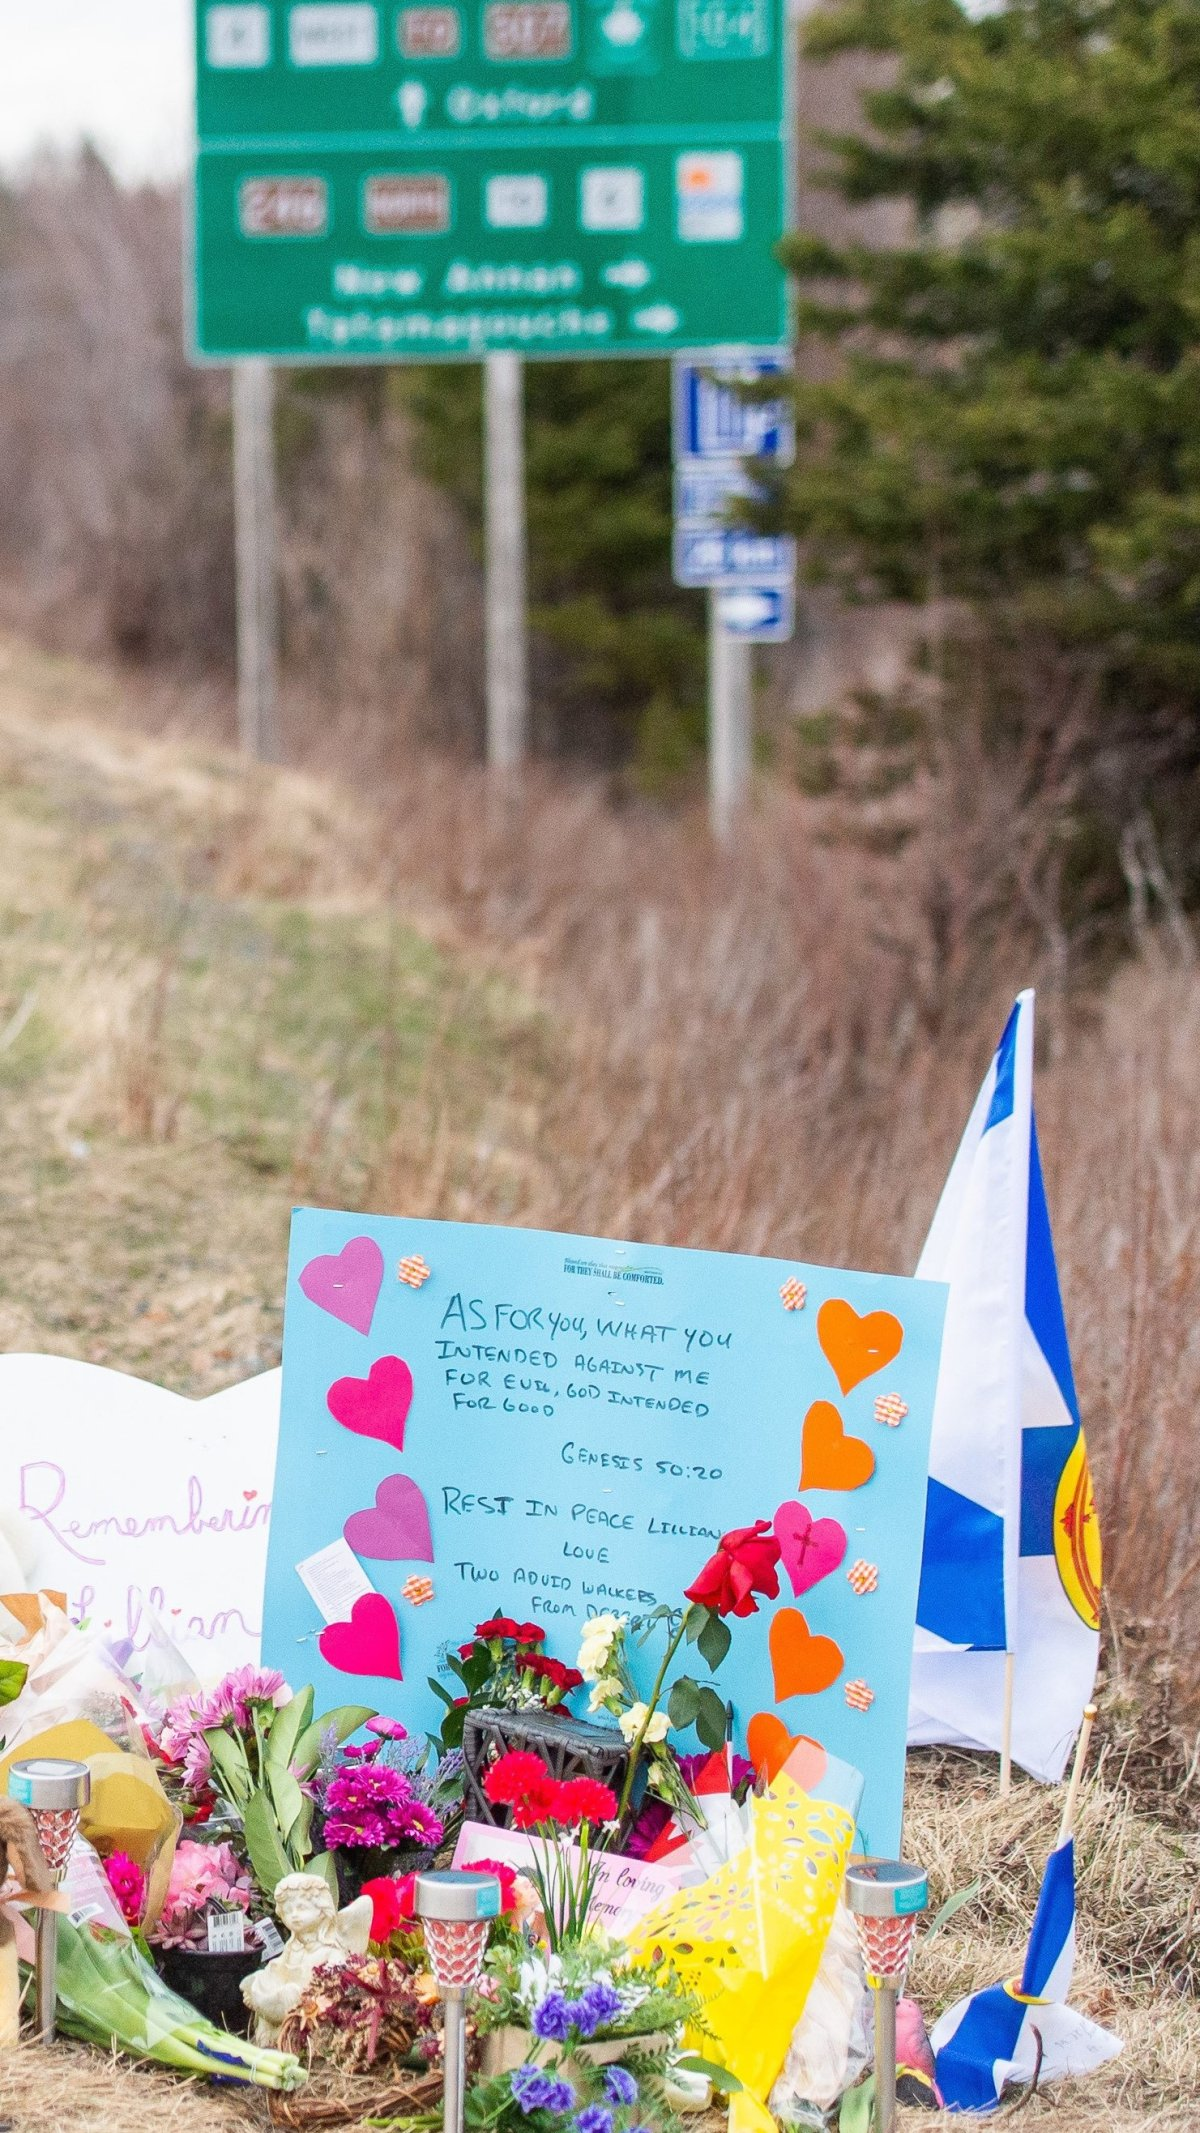 A memorial remembering Lillian Hyslop is seen along the road in Wentworth, N.S. on Friday, April 24, 2020. 22 people are dead after a man went on a murderous rampage in Portapique and several other Nova Scotia communities. THE CANADIAN PRESS/Liam Hennessey.